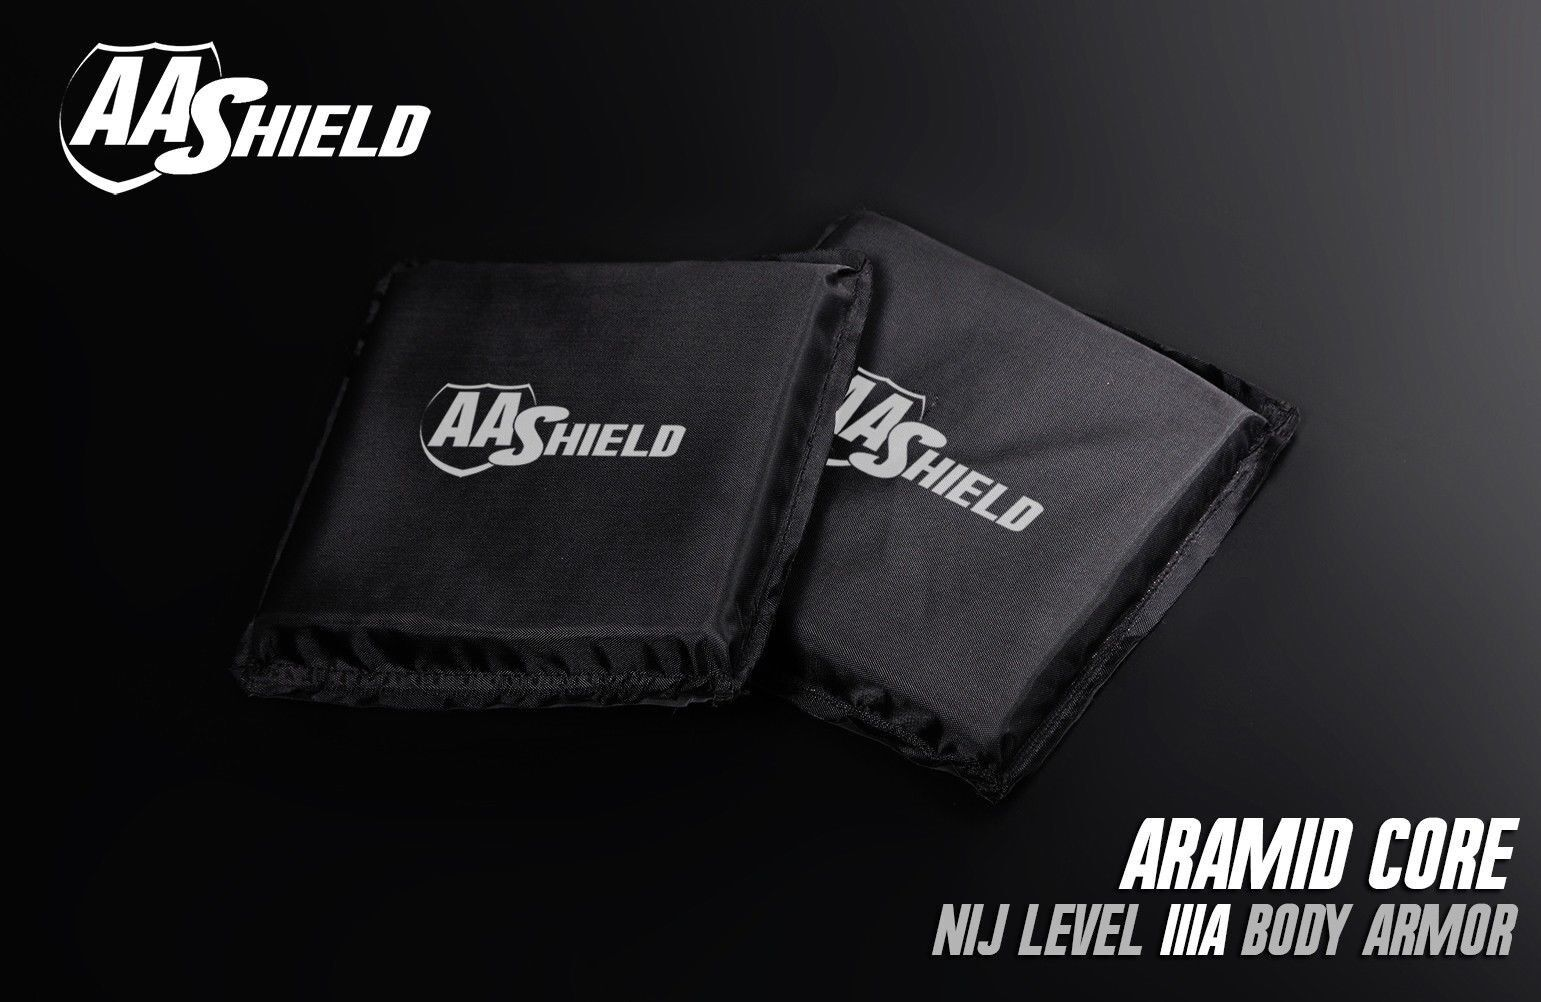 AA Shield Bullet Proof Panel Body Armor Inserts Soft Plate  Lvl IIIA 3A 6x6 Pair  everyday low prices